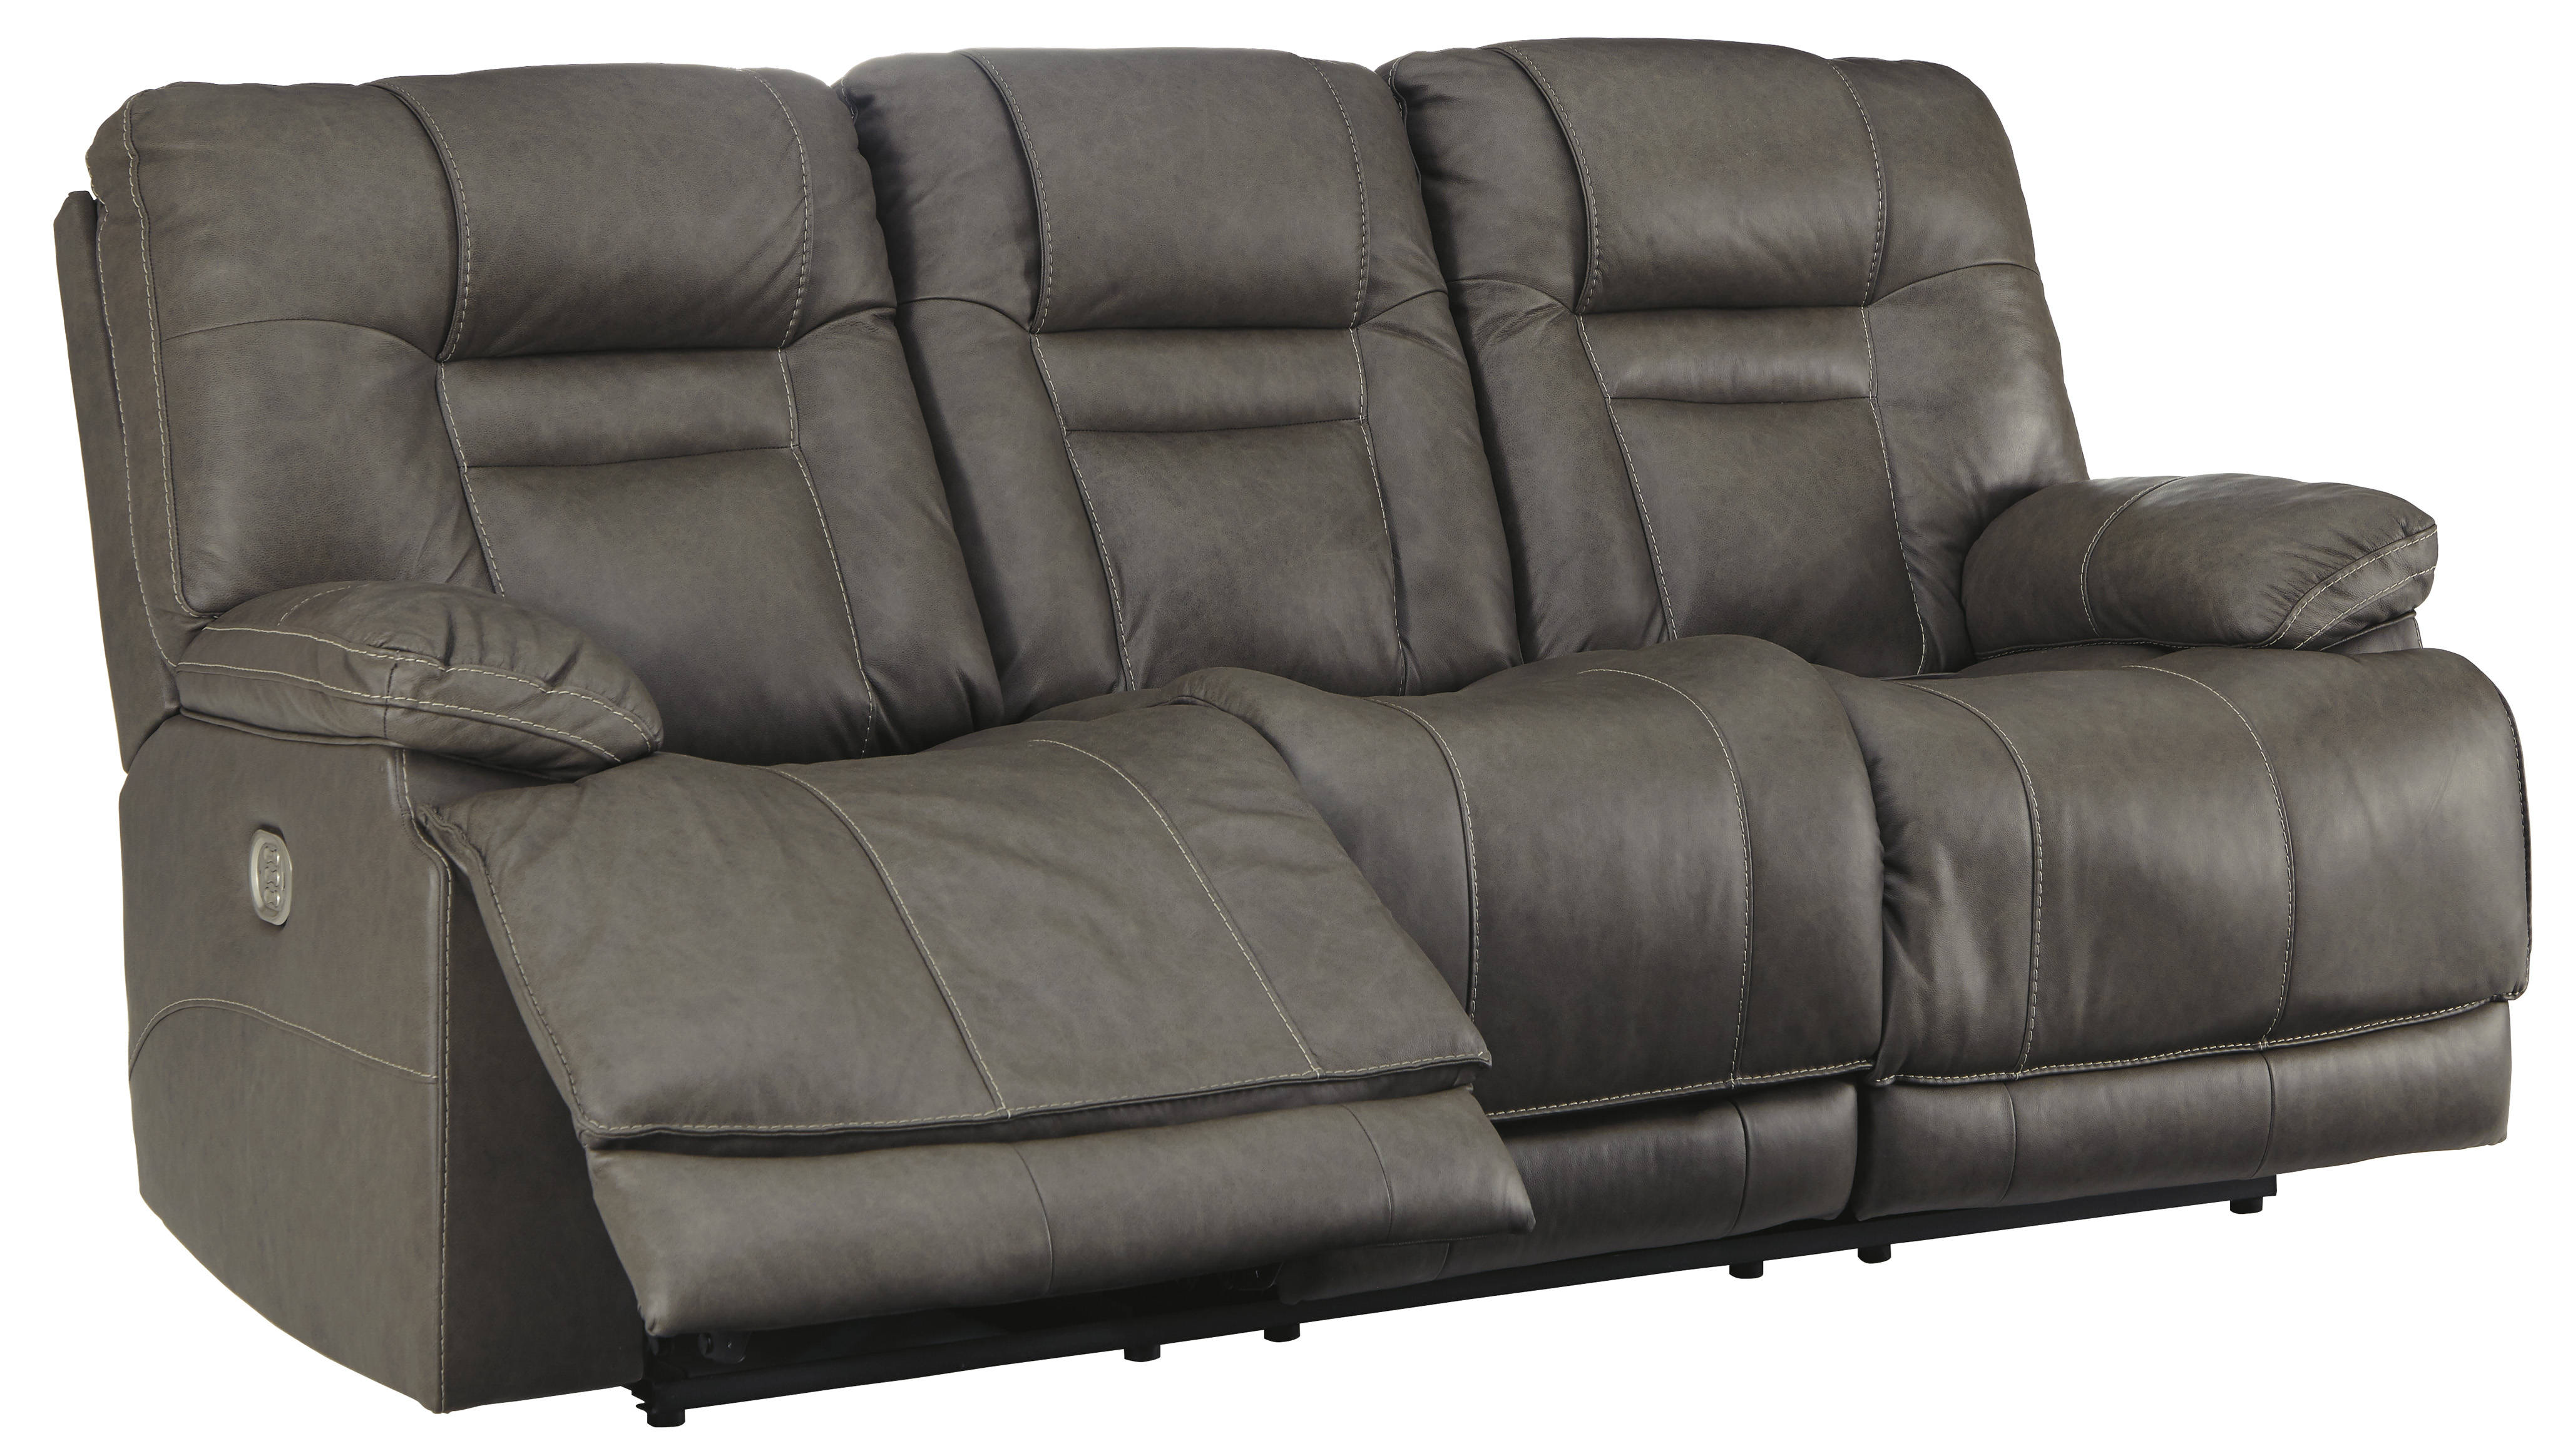 Swell Ashley Furniture Wurstrow Smoke Power Reclining Sofa With Adjustable Headrest Home Interior And Landscaping Mentranervesignezvosmurscom